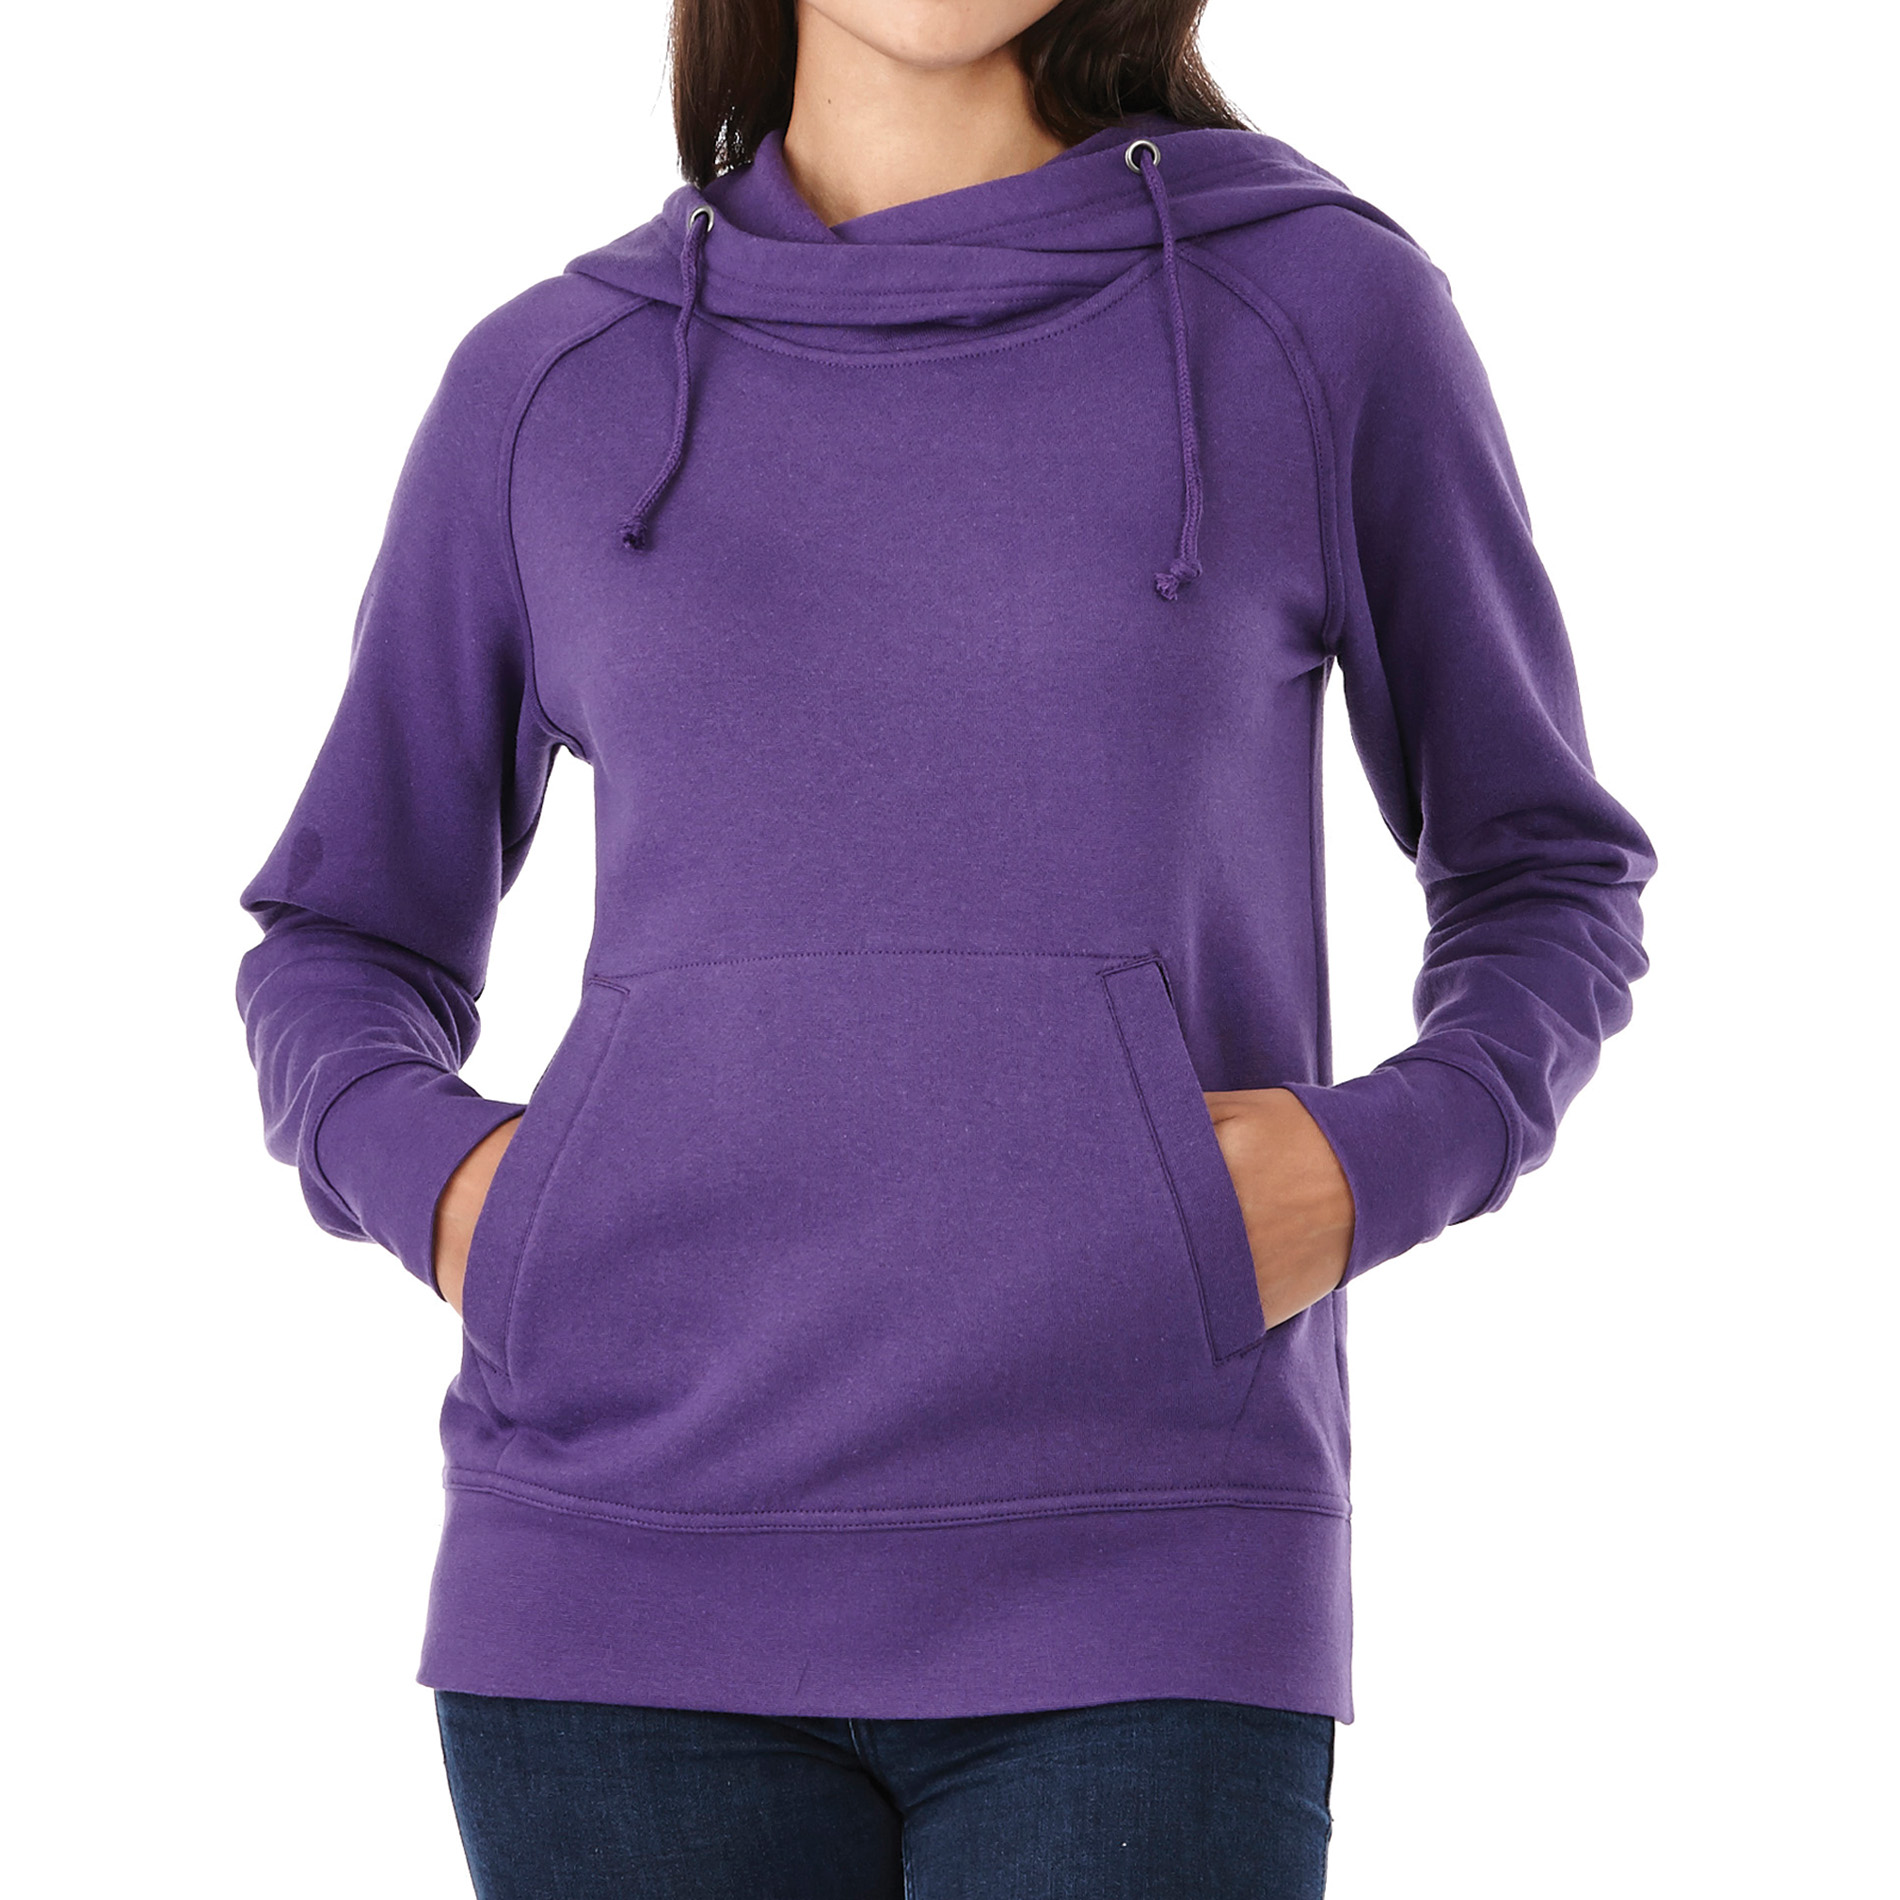 Elevate TM98209 - Women's DAYTON Fleece Hoodie